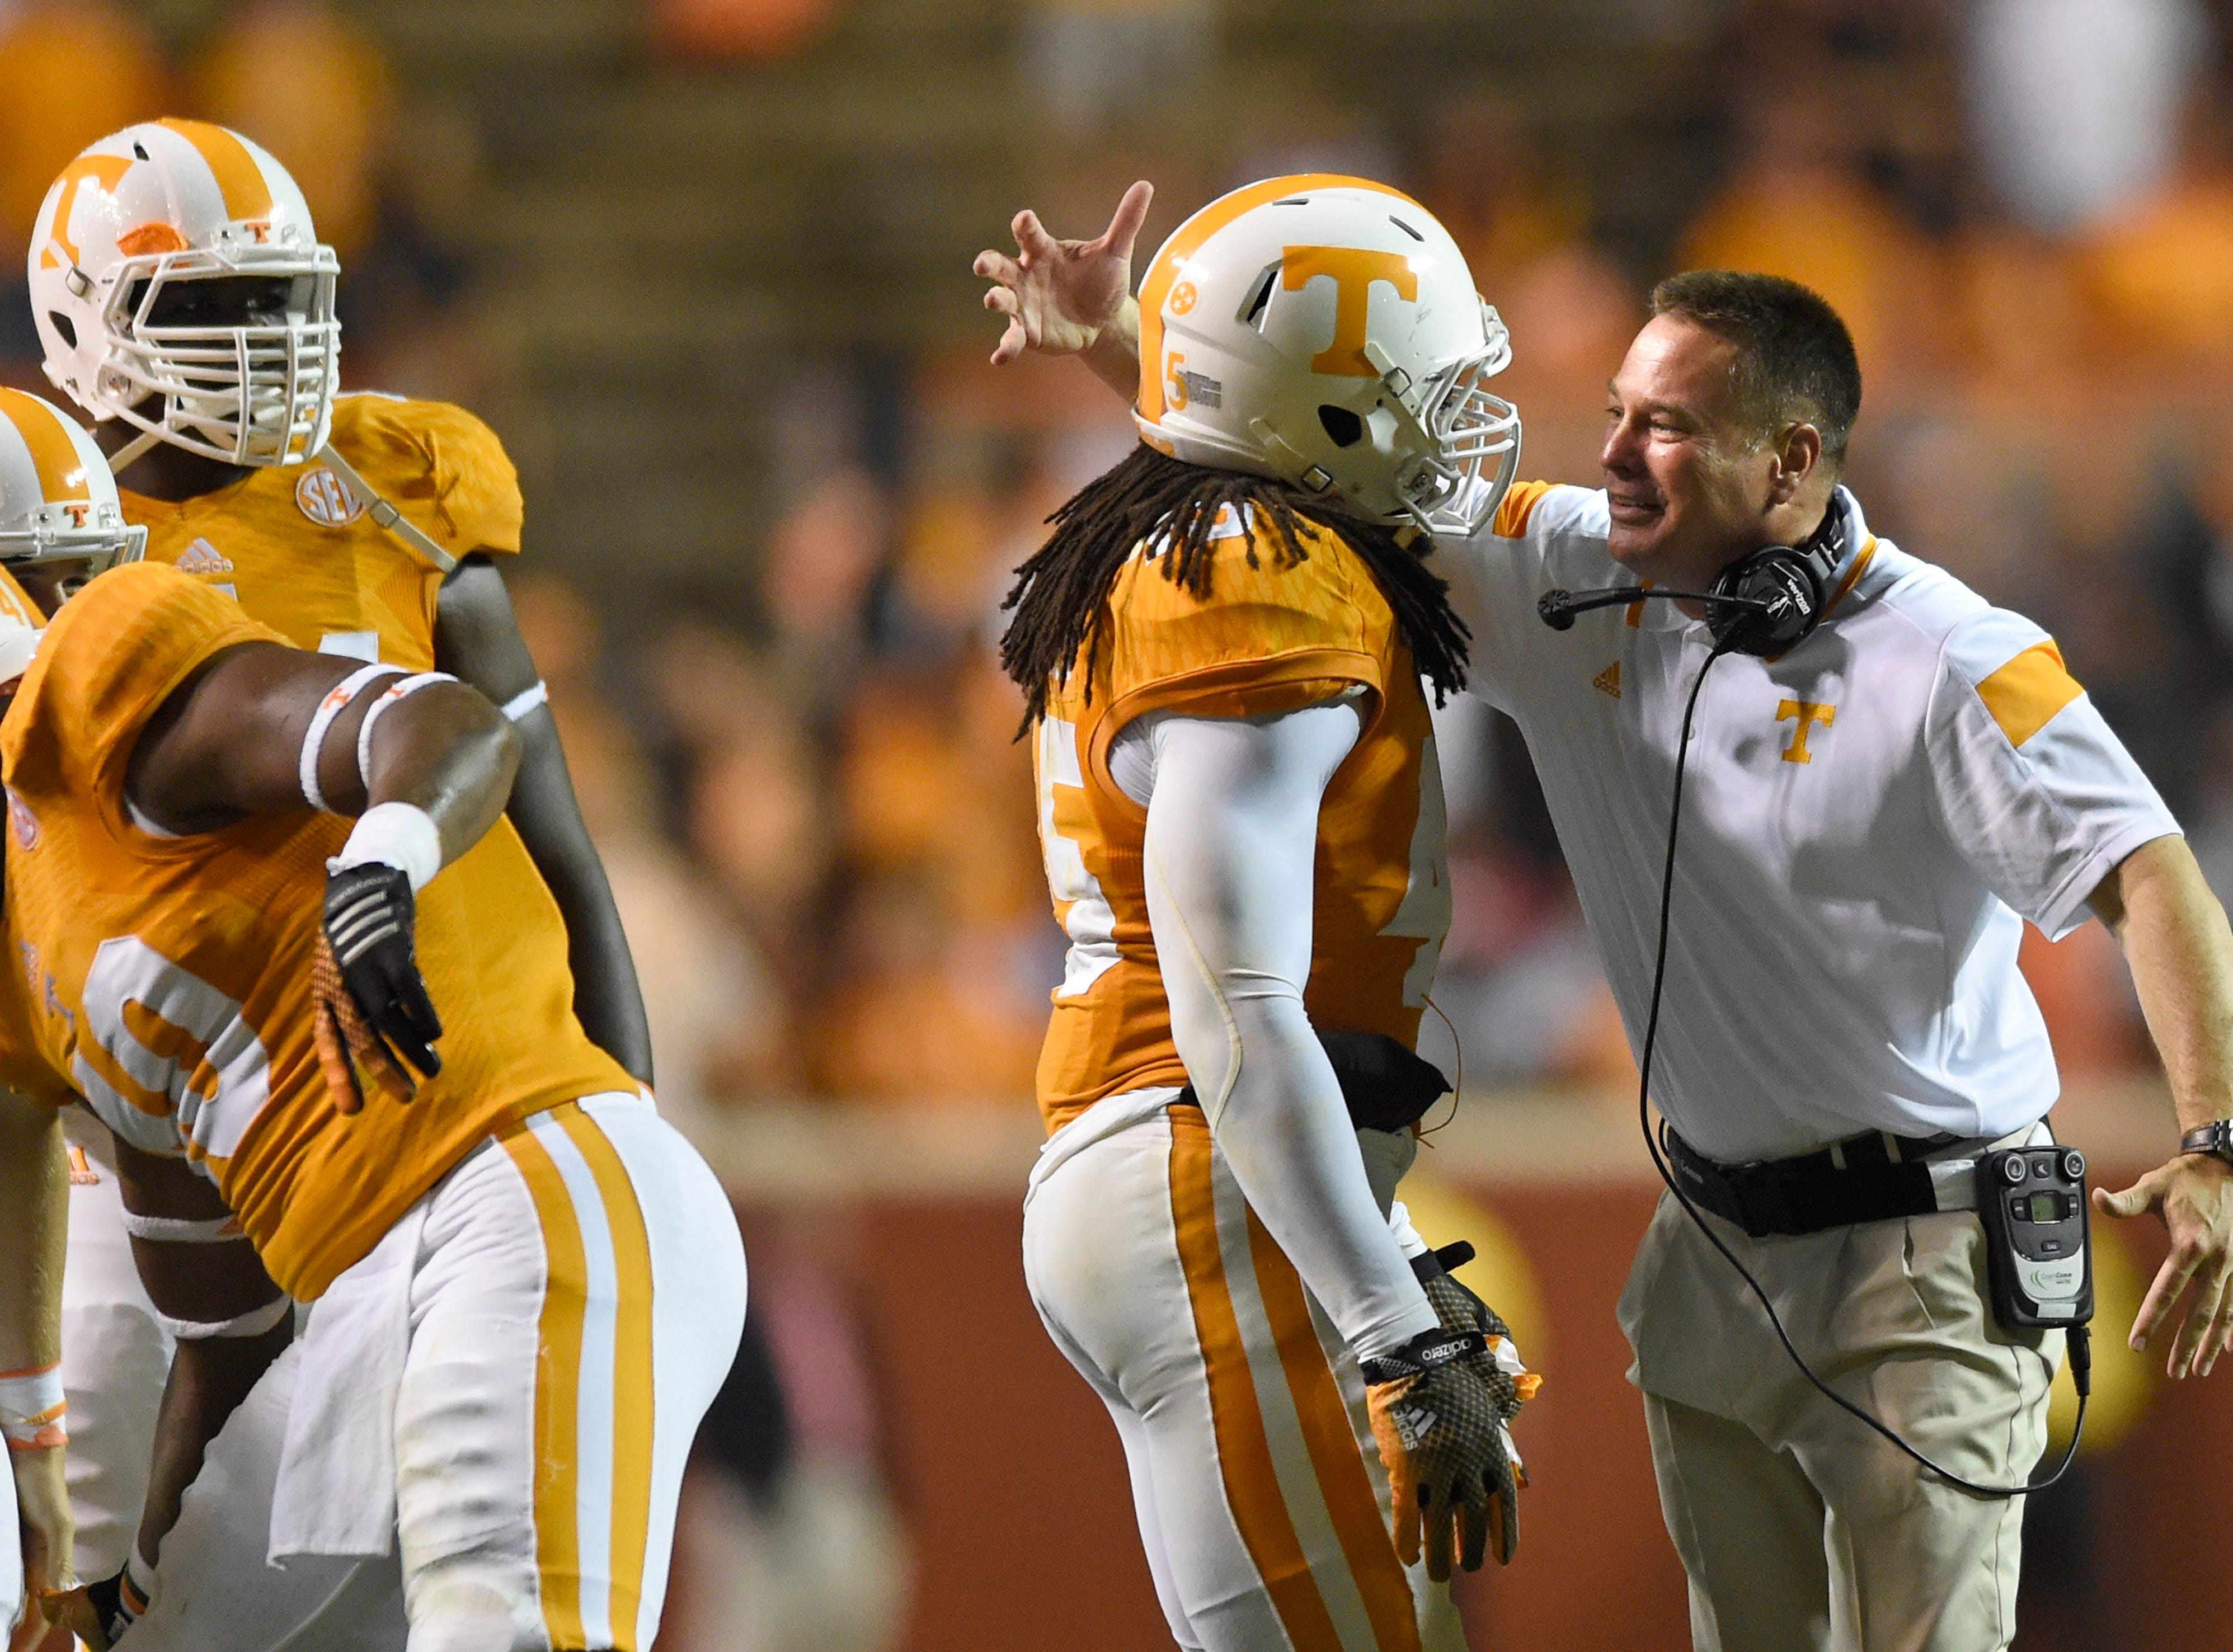 Tennessee coach Butch Jones, right, embraces Tennessee linebacker A.J. Johnson (45) after Johnson made an interception against Utah State during the second half at Neyland Stadium, Sunday, Aug. 31, 2014 in Knoxville, Tenn. Tennessee won 38-7.